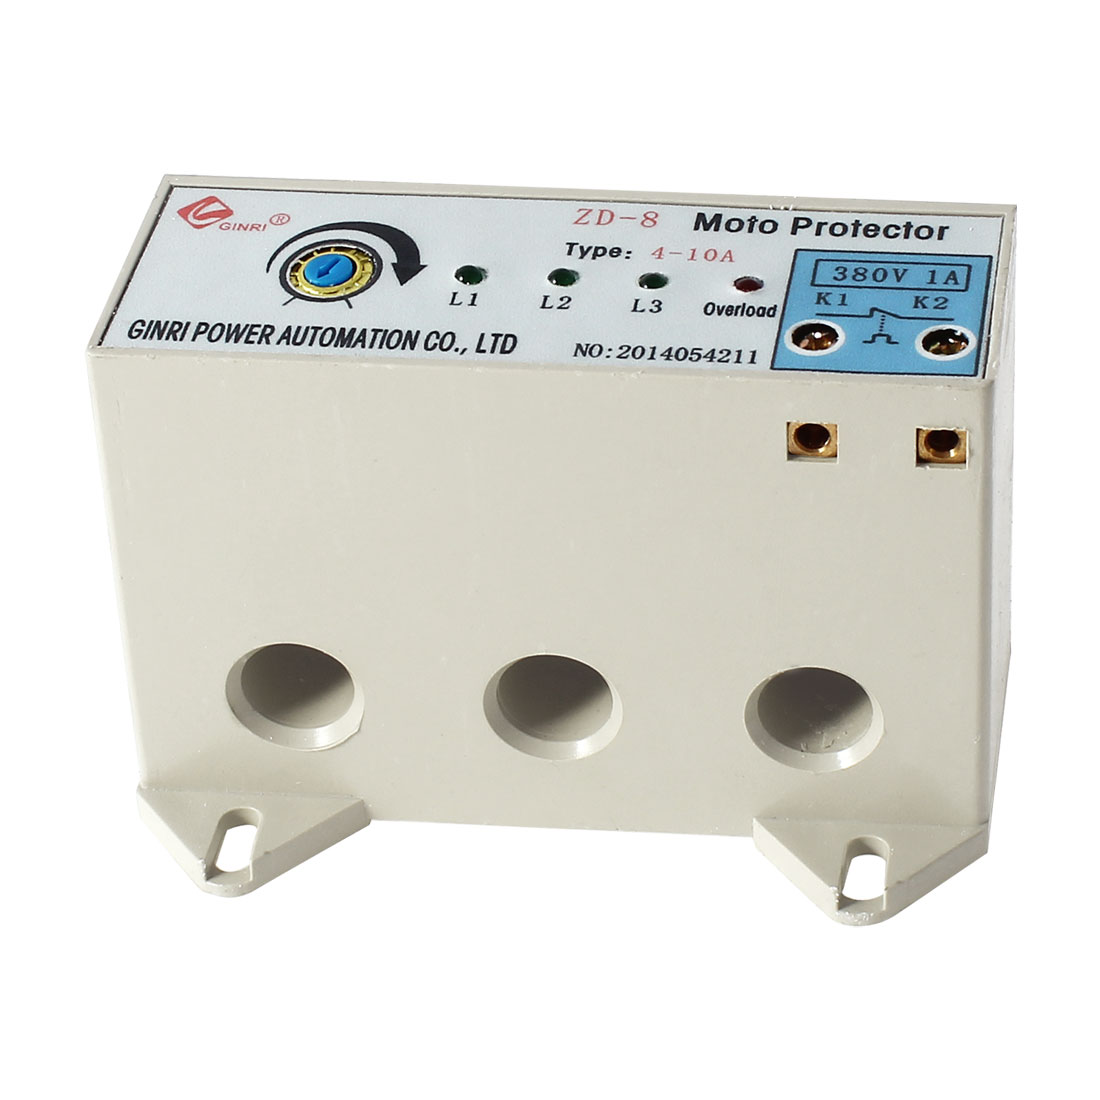 ZD-8/4-10A 3 Phase 4-10 Ampere Adjustable Current Breaker Motor Circuit Protector Non Power